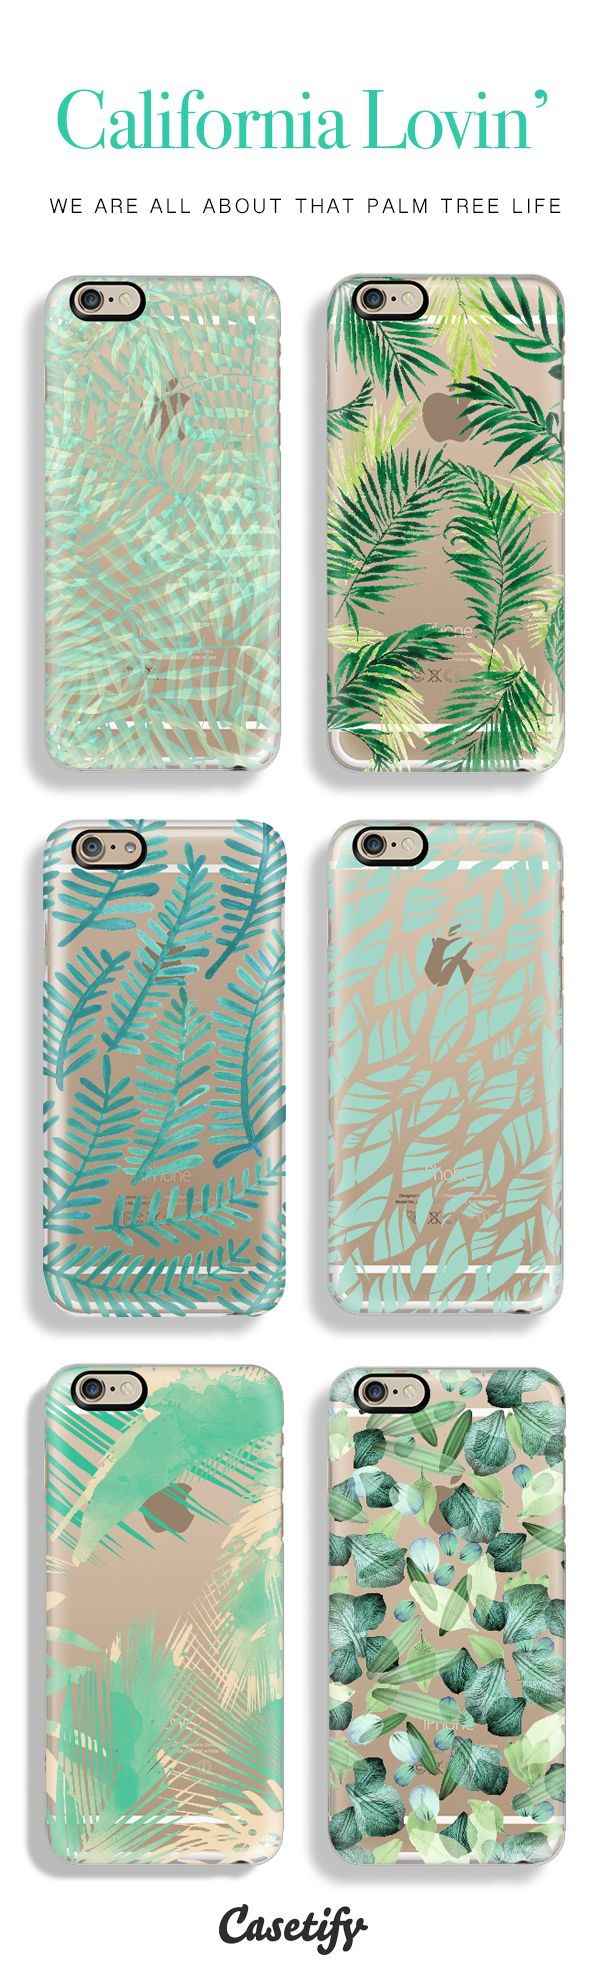 Top 6 palm tree iPhone 6 protective phone cases | Click through to see more iPhone 6 phone case ideas  www.casetify.com/…